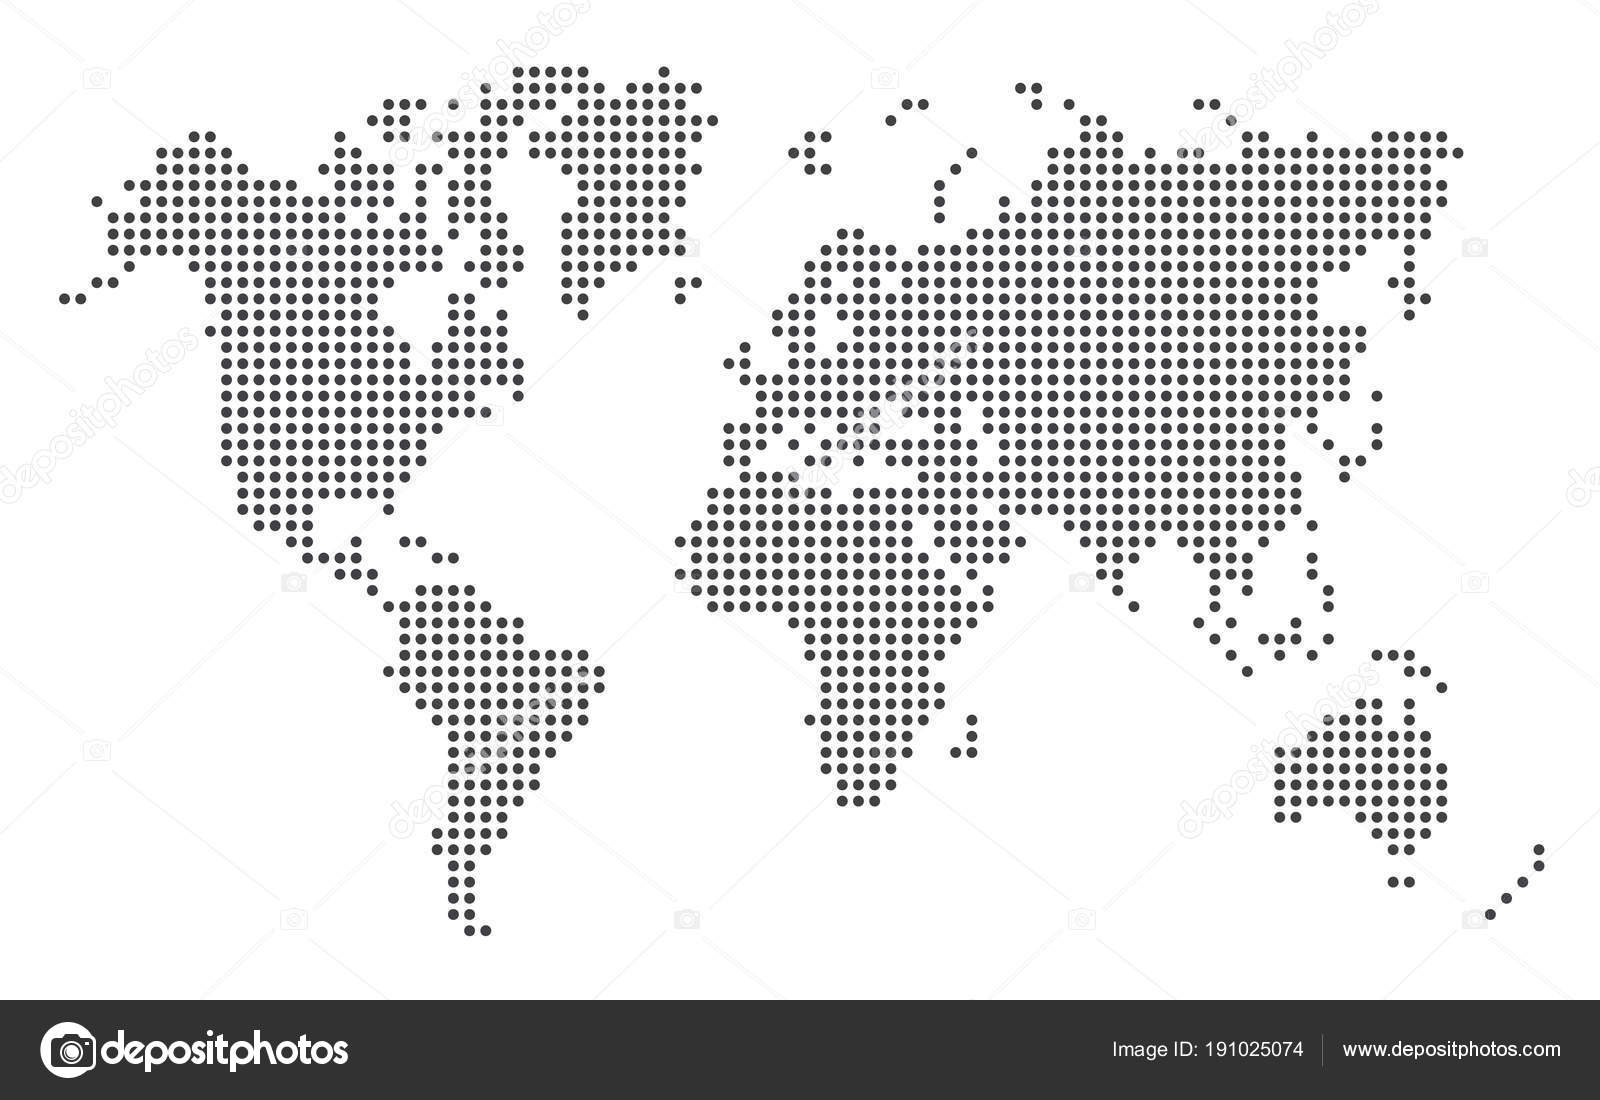 Dotted world map stock vector nirodesign 191025074 dotted world map template eps 10 vector illustration on white background vector by nirodesign gumiabroncs Choice Image